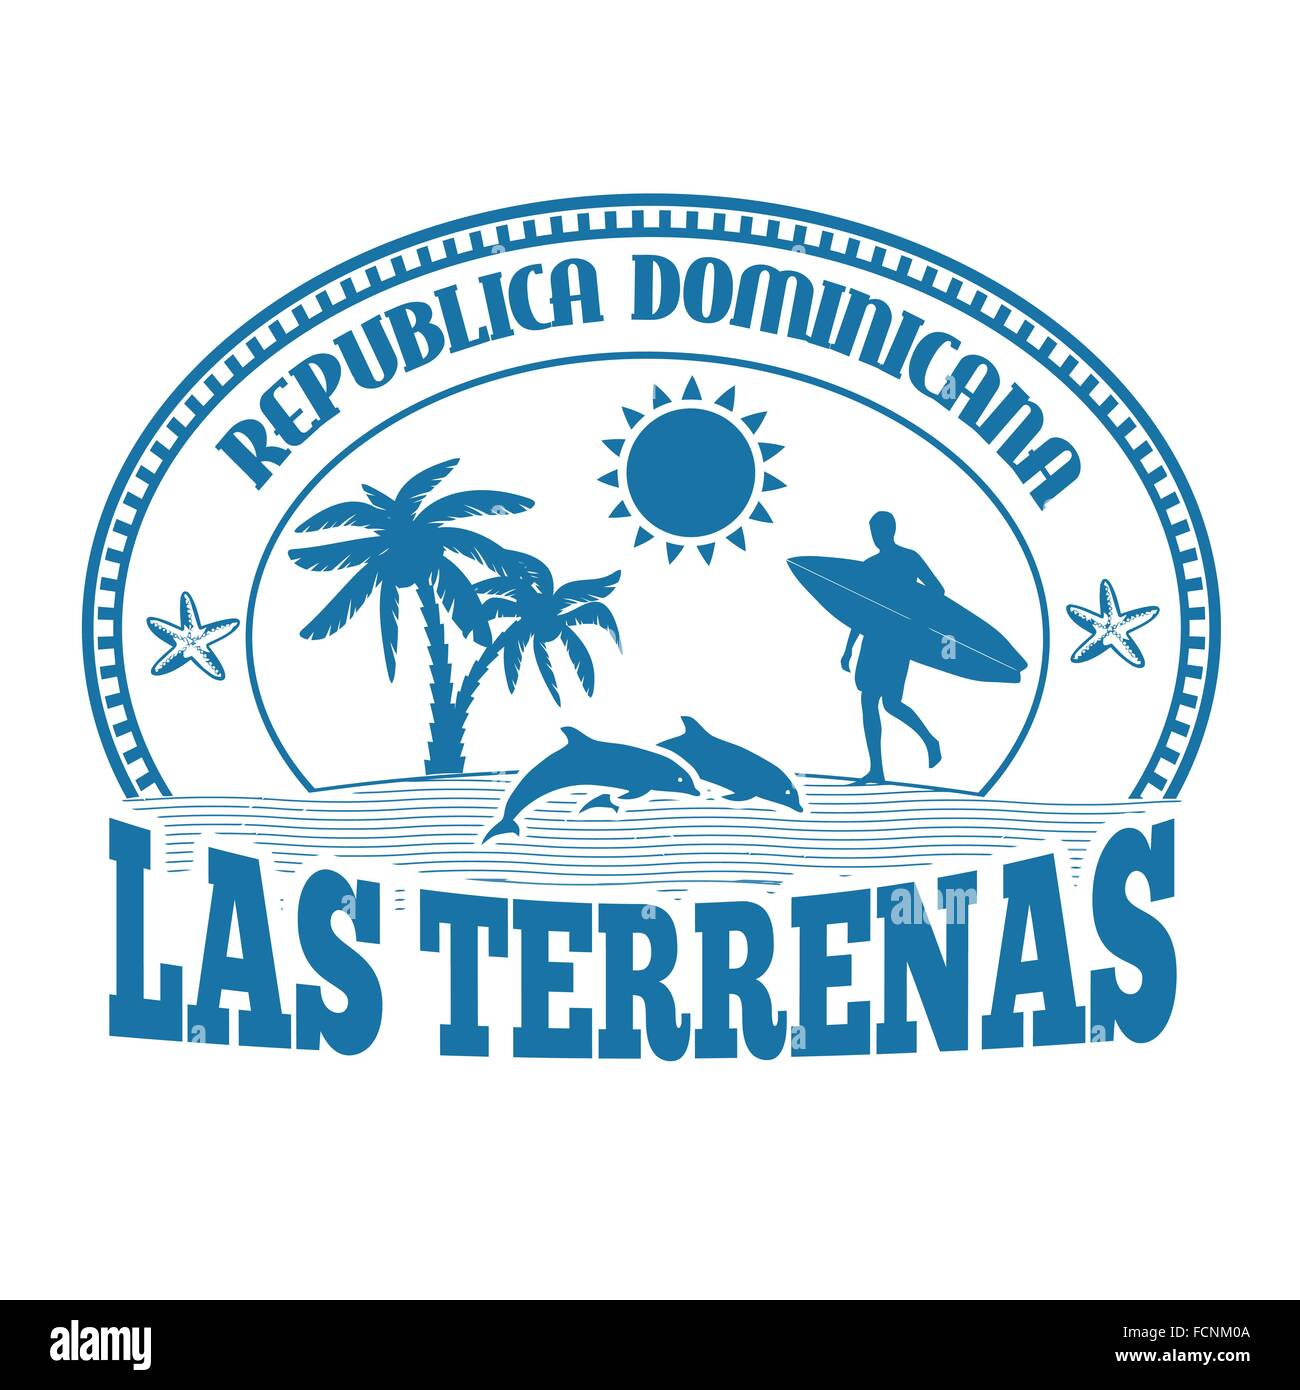 Las Terrenas, Dominican Republic, stamp or label on white background, vector illustration Stock Vector